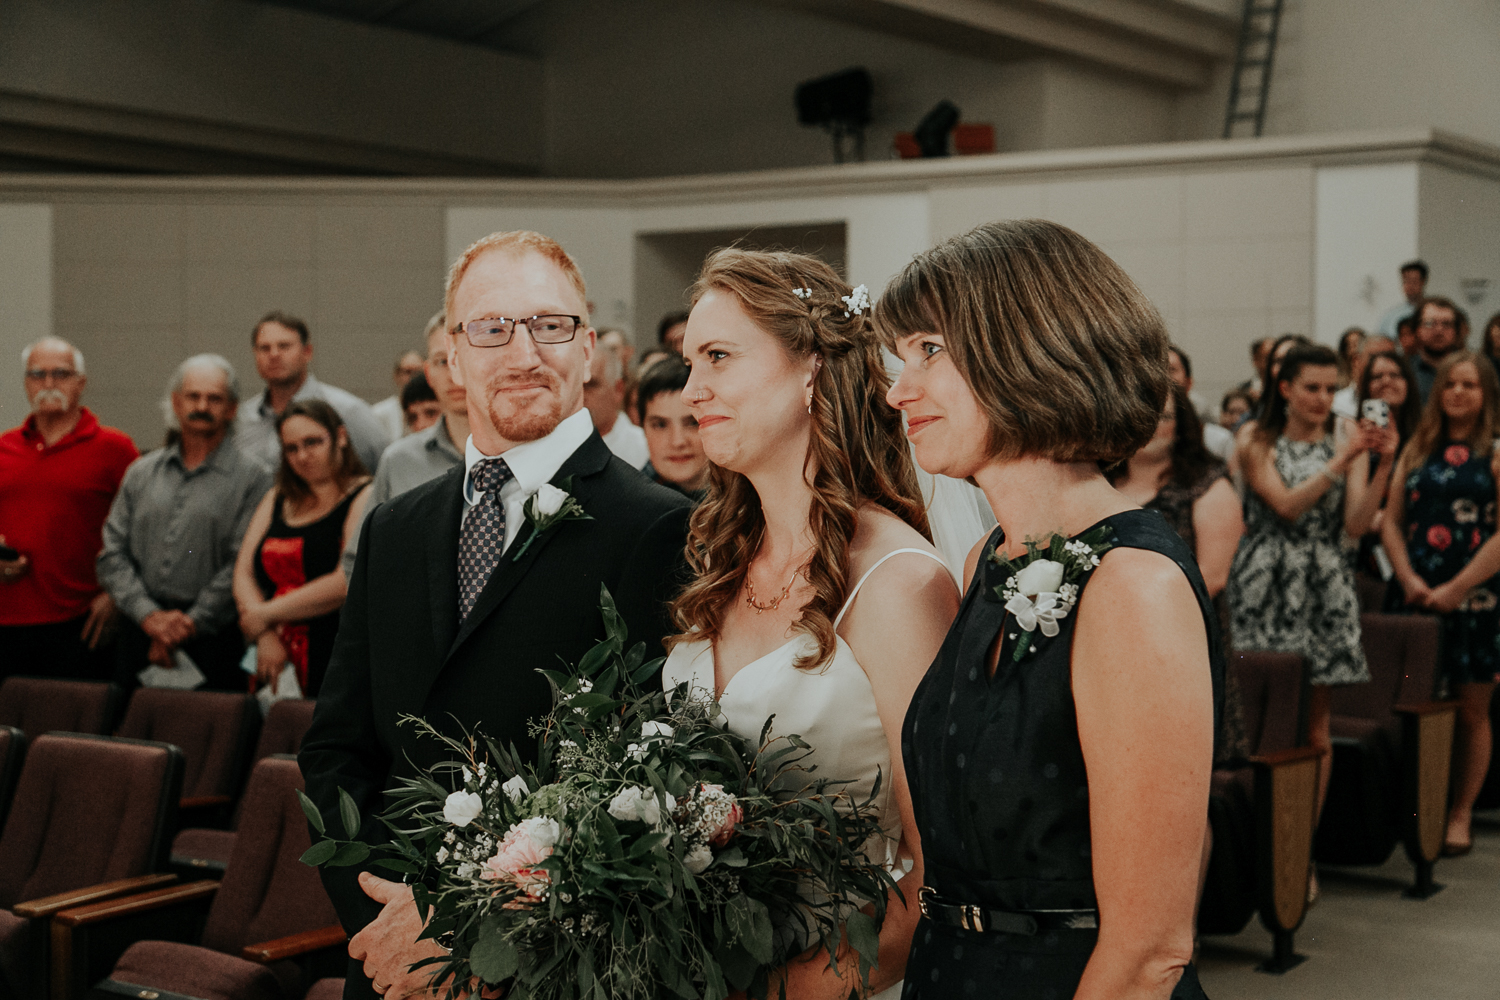 lethbridge-wedding-photographer-love-and-be-loved-photography-dan-tynnea-picture-image-photo-107.jpg